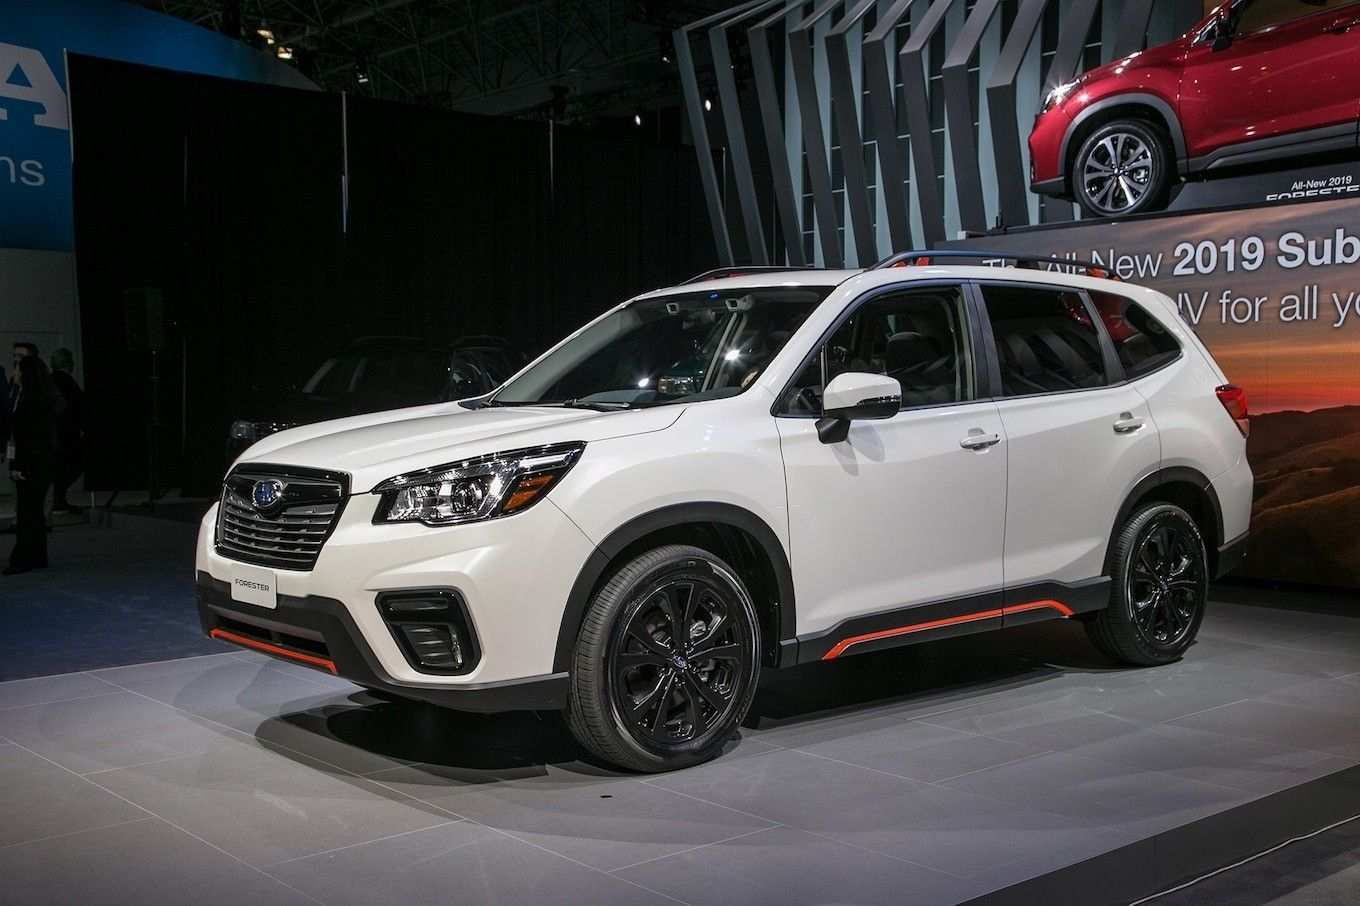 63 New Subaru Xv Turbo 2019 Price by Subaru Xv Turbo 2019